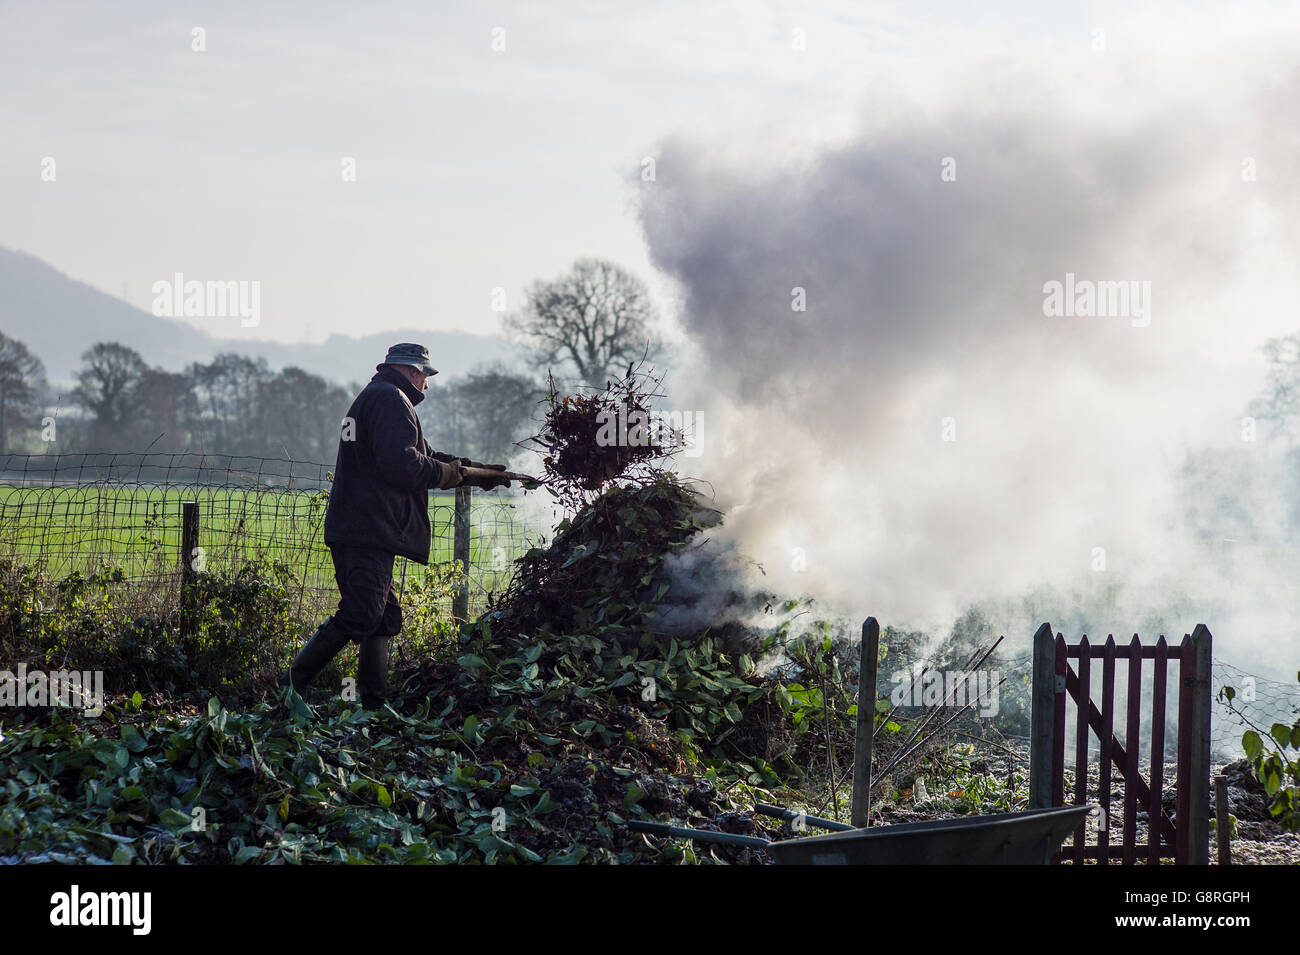 Burning garden waste in a country garden in winter - Stock Image